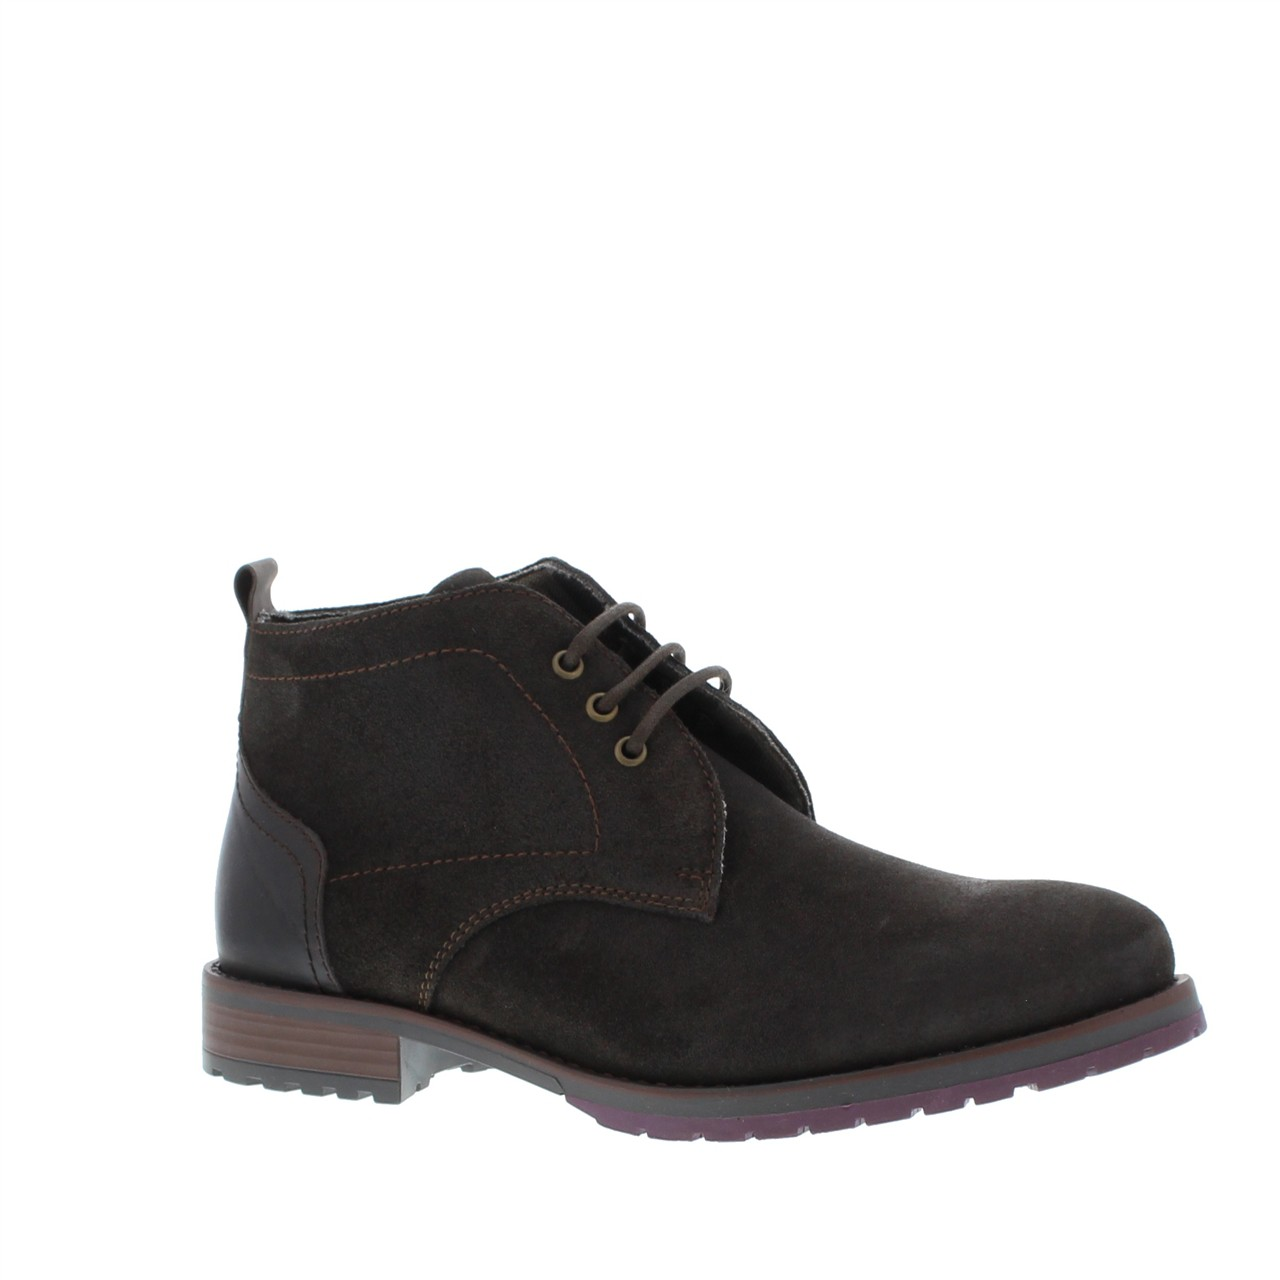 Cypres Boots 161-35-613